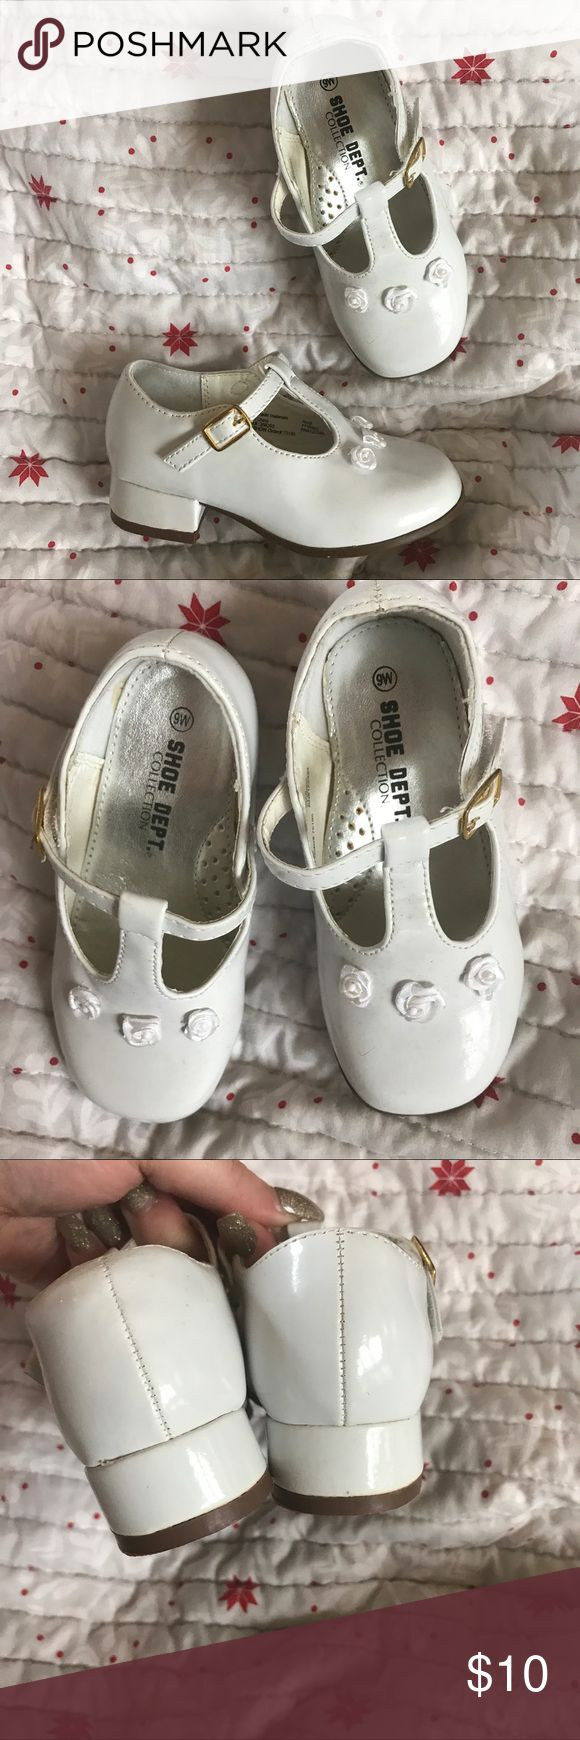 White Size 9 Toddler Dress Shoes Worn, but in good condition. Size 9w in toddlers. White dress shoes for toddlers. Small signs of wear, but no noticeable flaws when worn. Shoe Department Shoes Dress Shoes